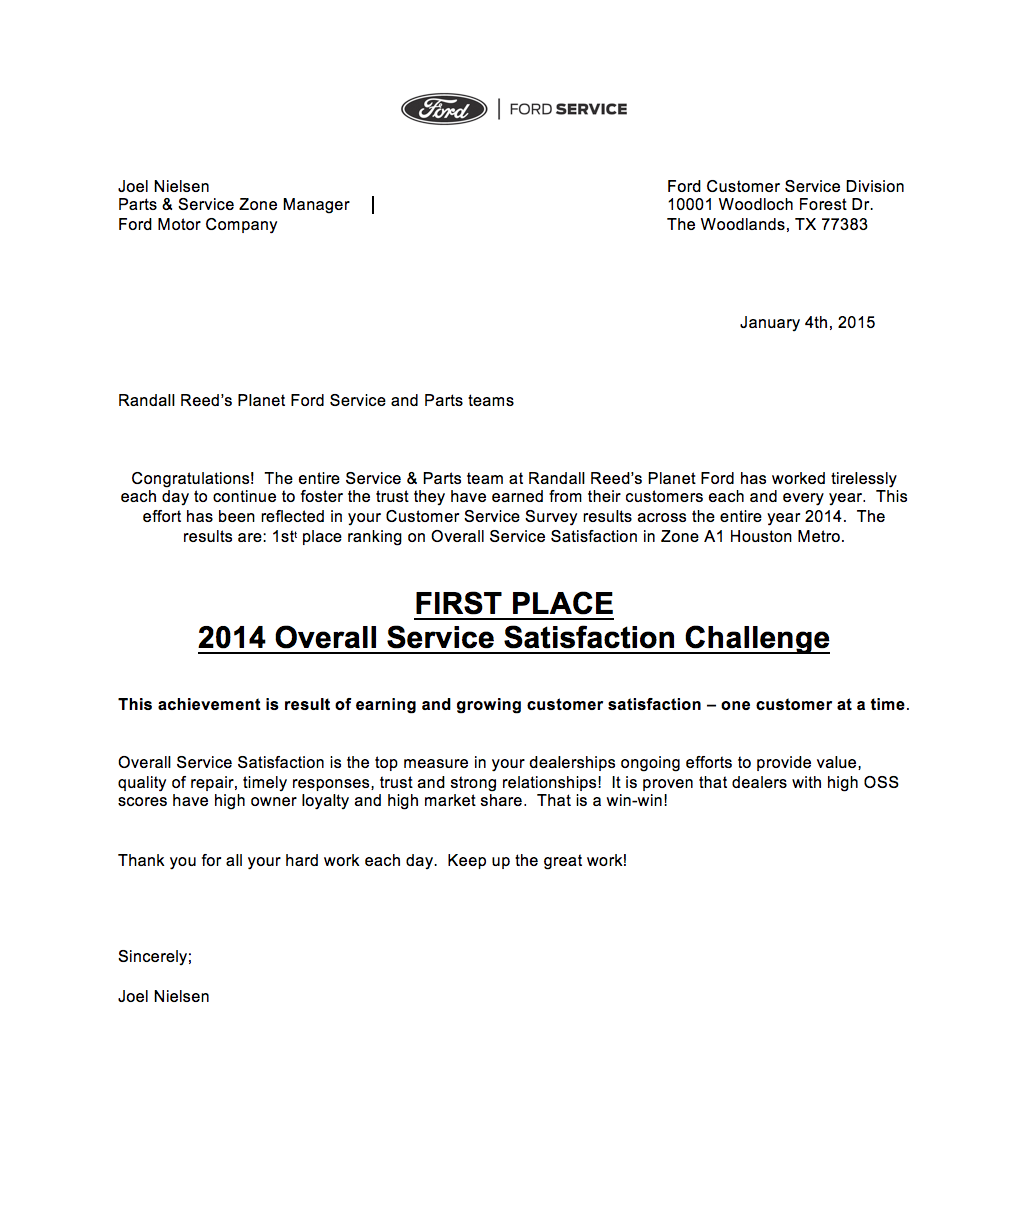 Planet ford service quick lane bring home 1 customer for Ford motor company customer satisfaction survey